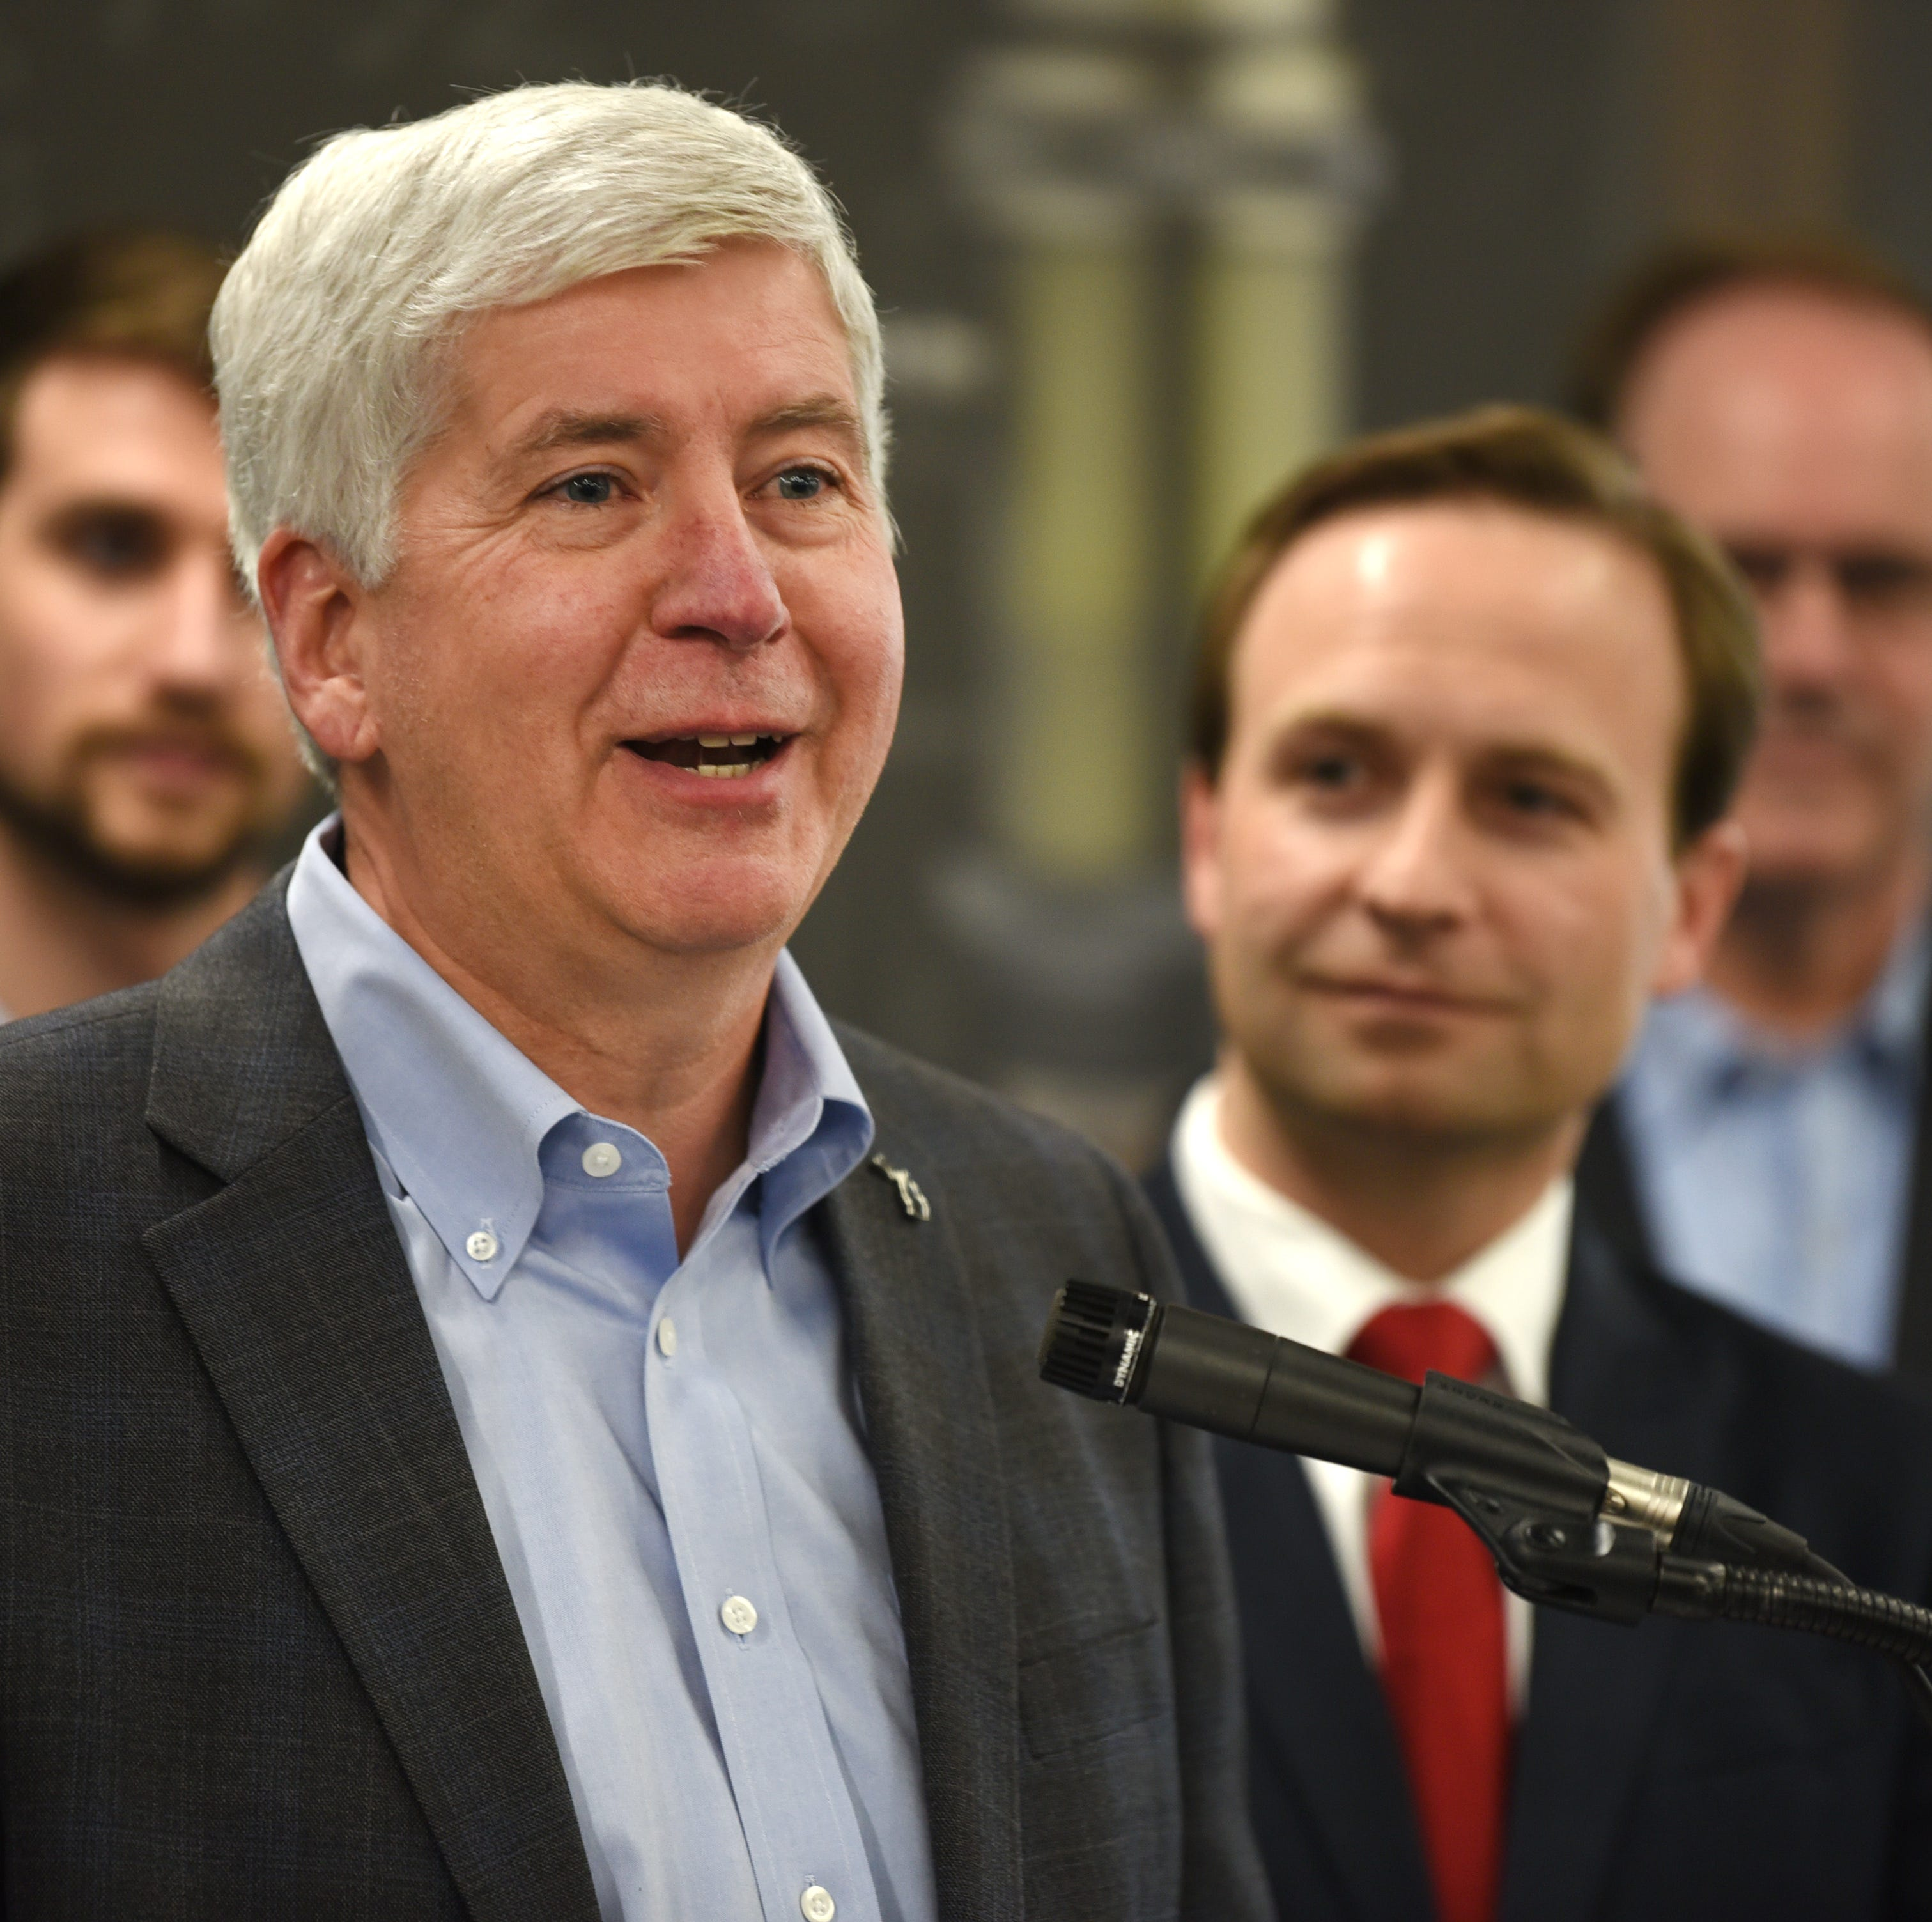 Once vetoed by Snyder, 'no stricter than federal' rule heads back to gov